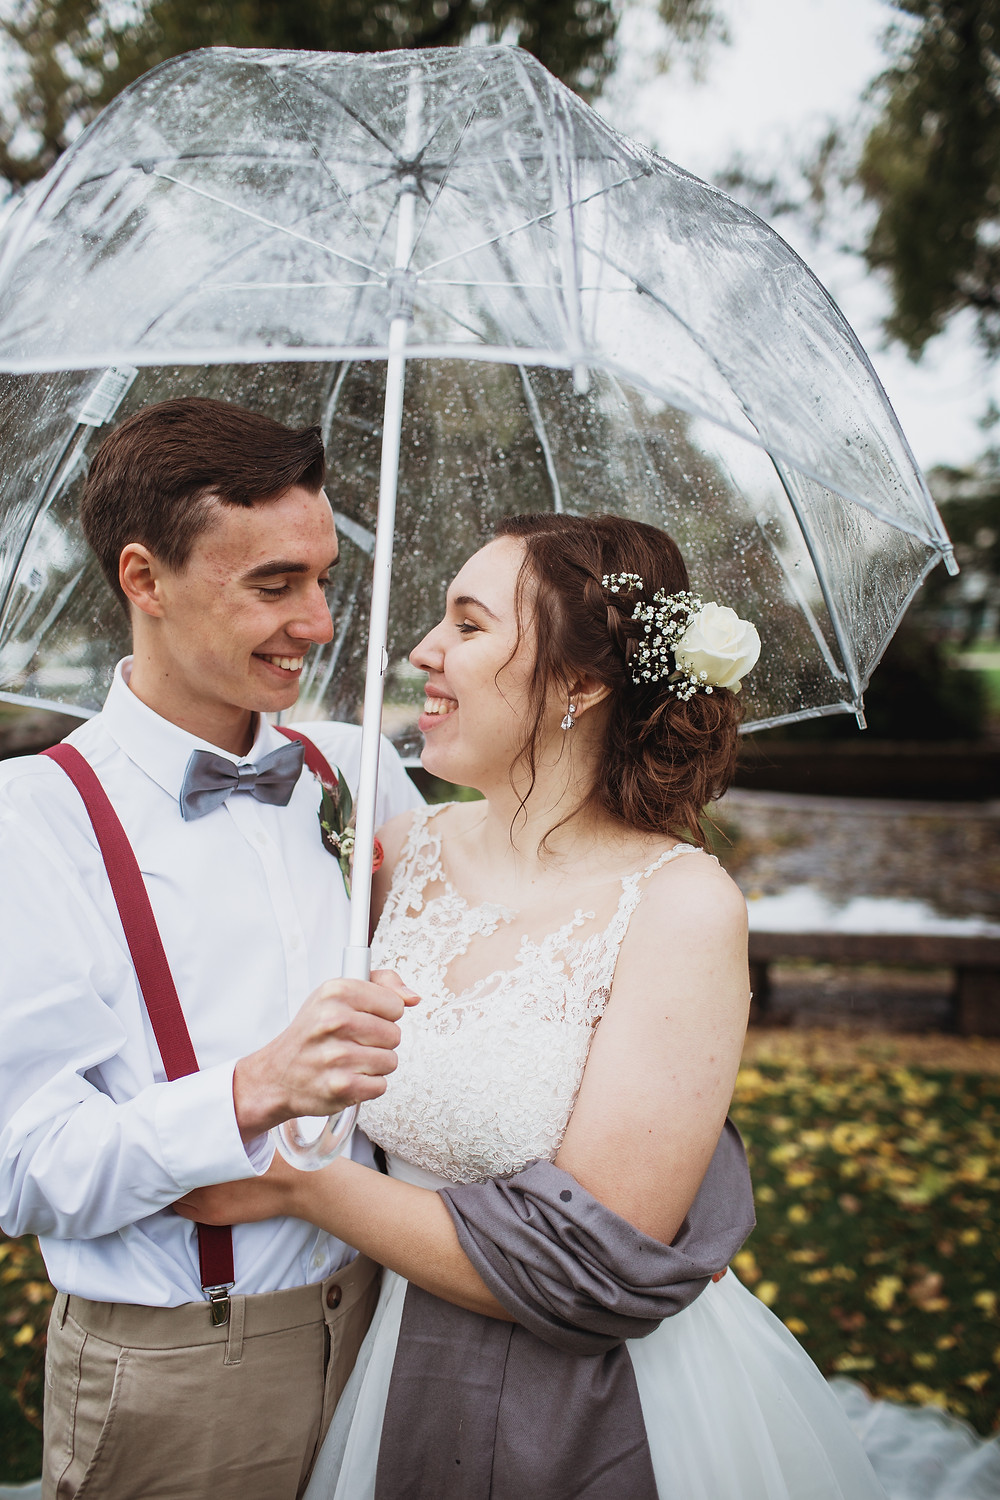 Smiling bride and groom under umbrella during rainy fall wedding day.